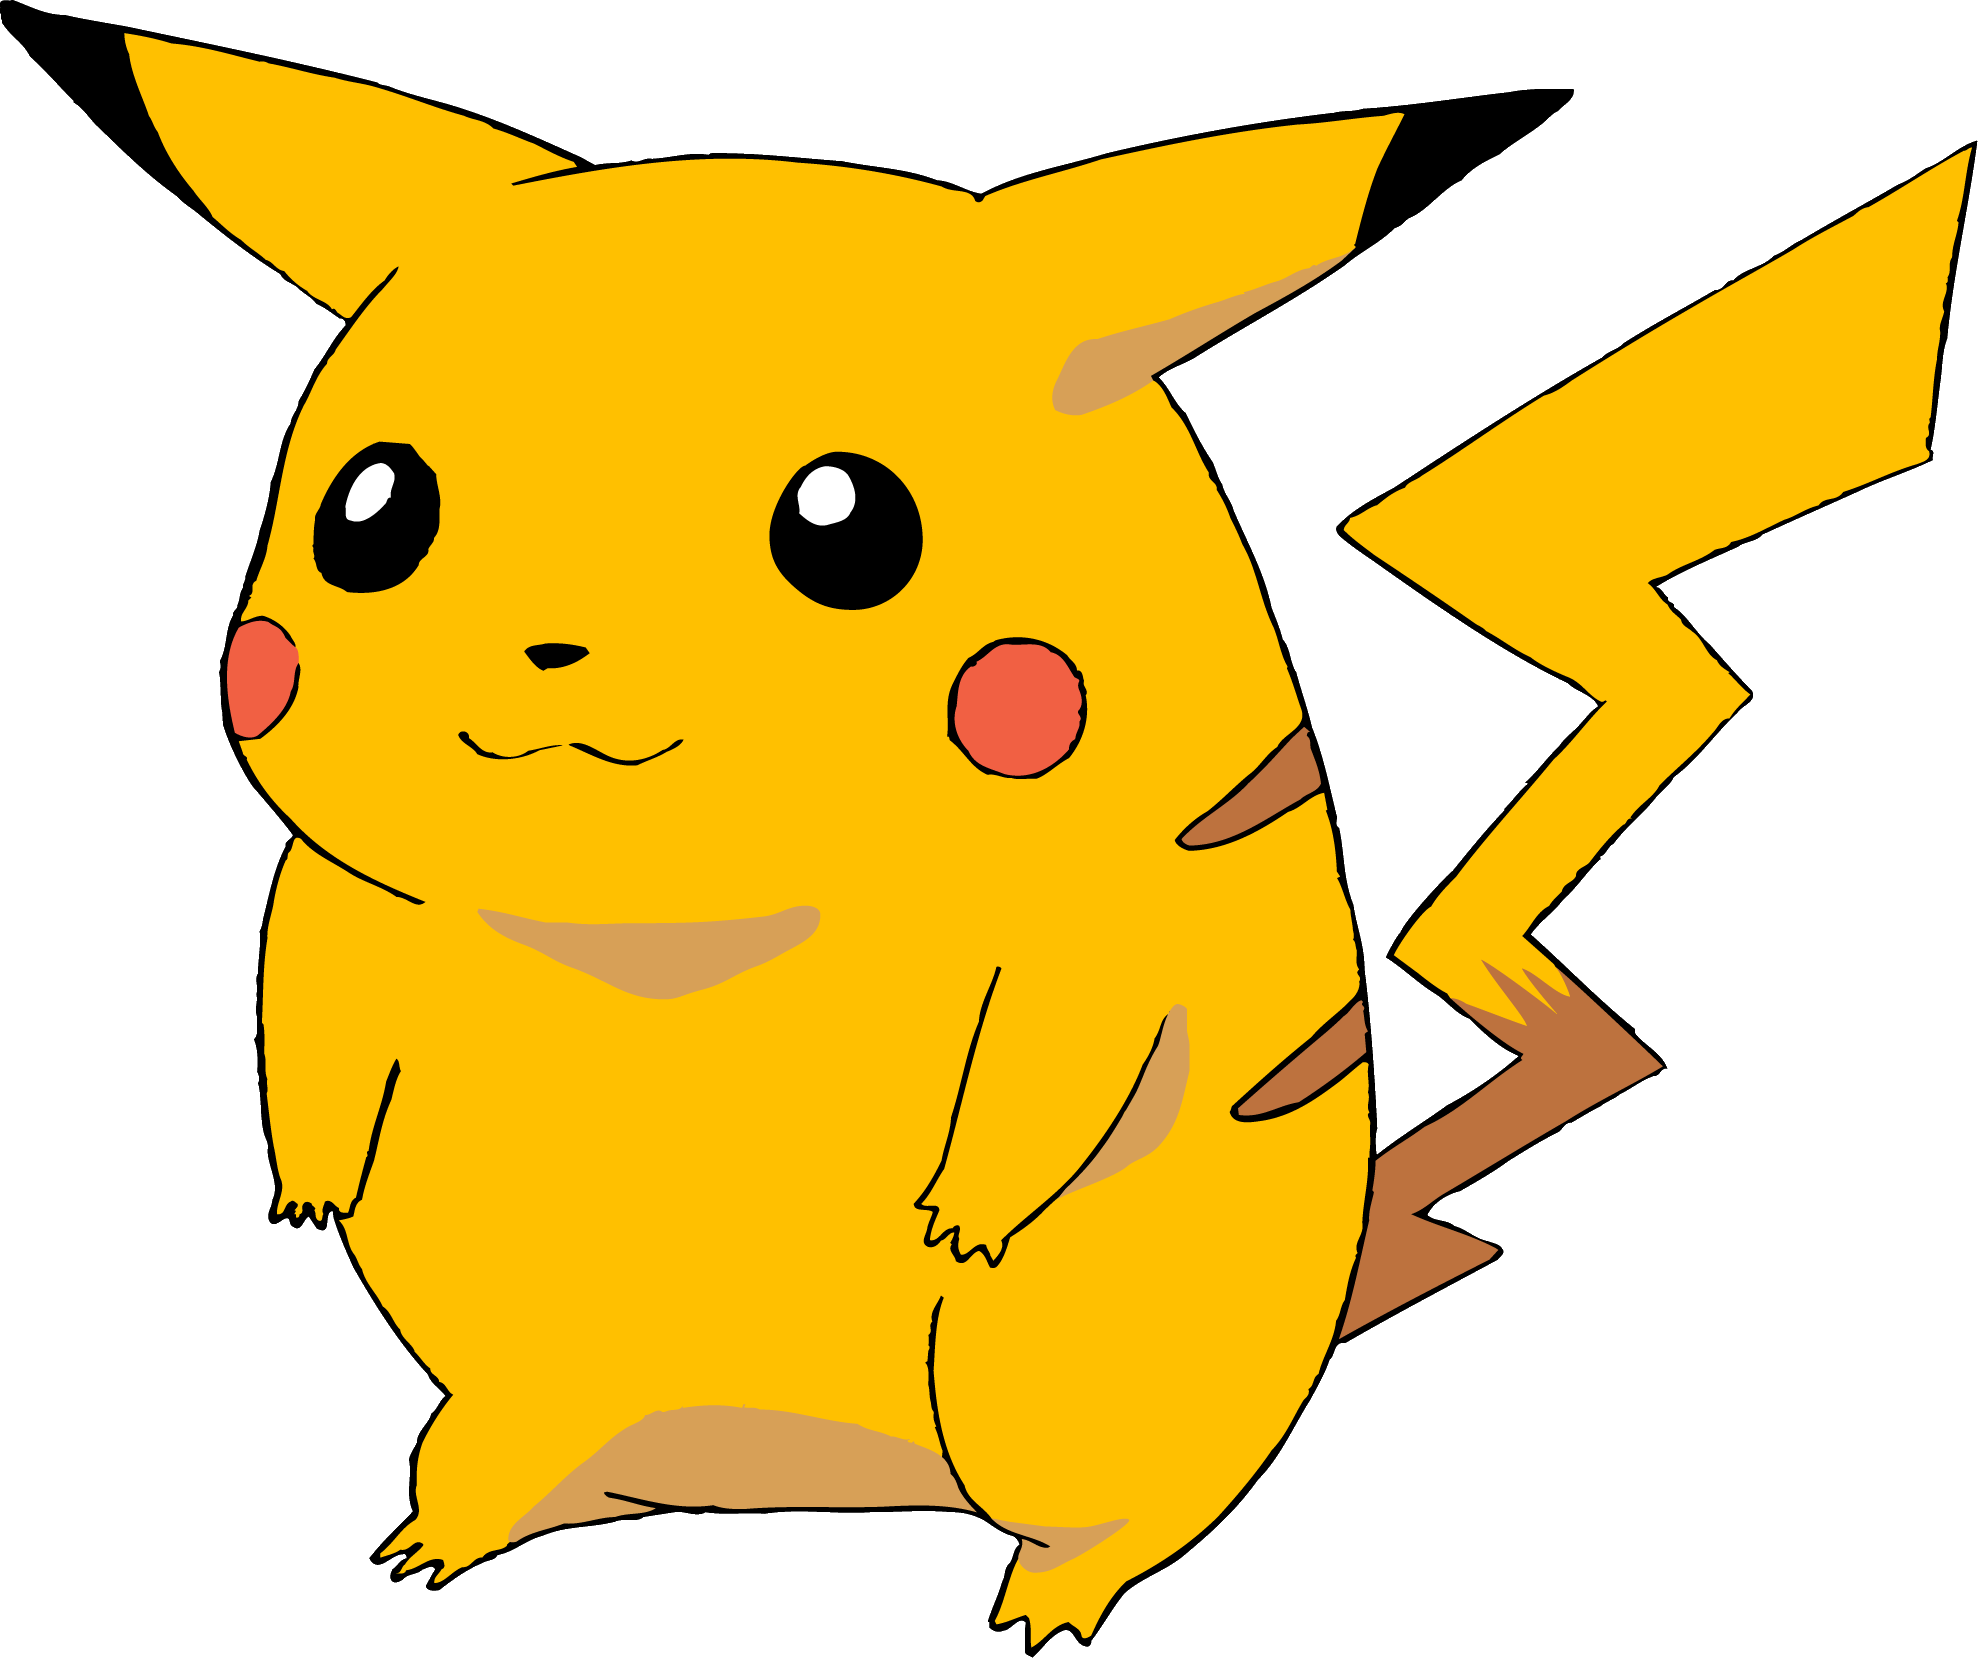 Drawing sound pikachu. Blast from the past